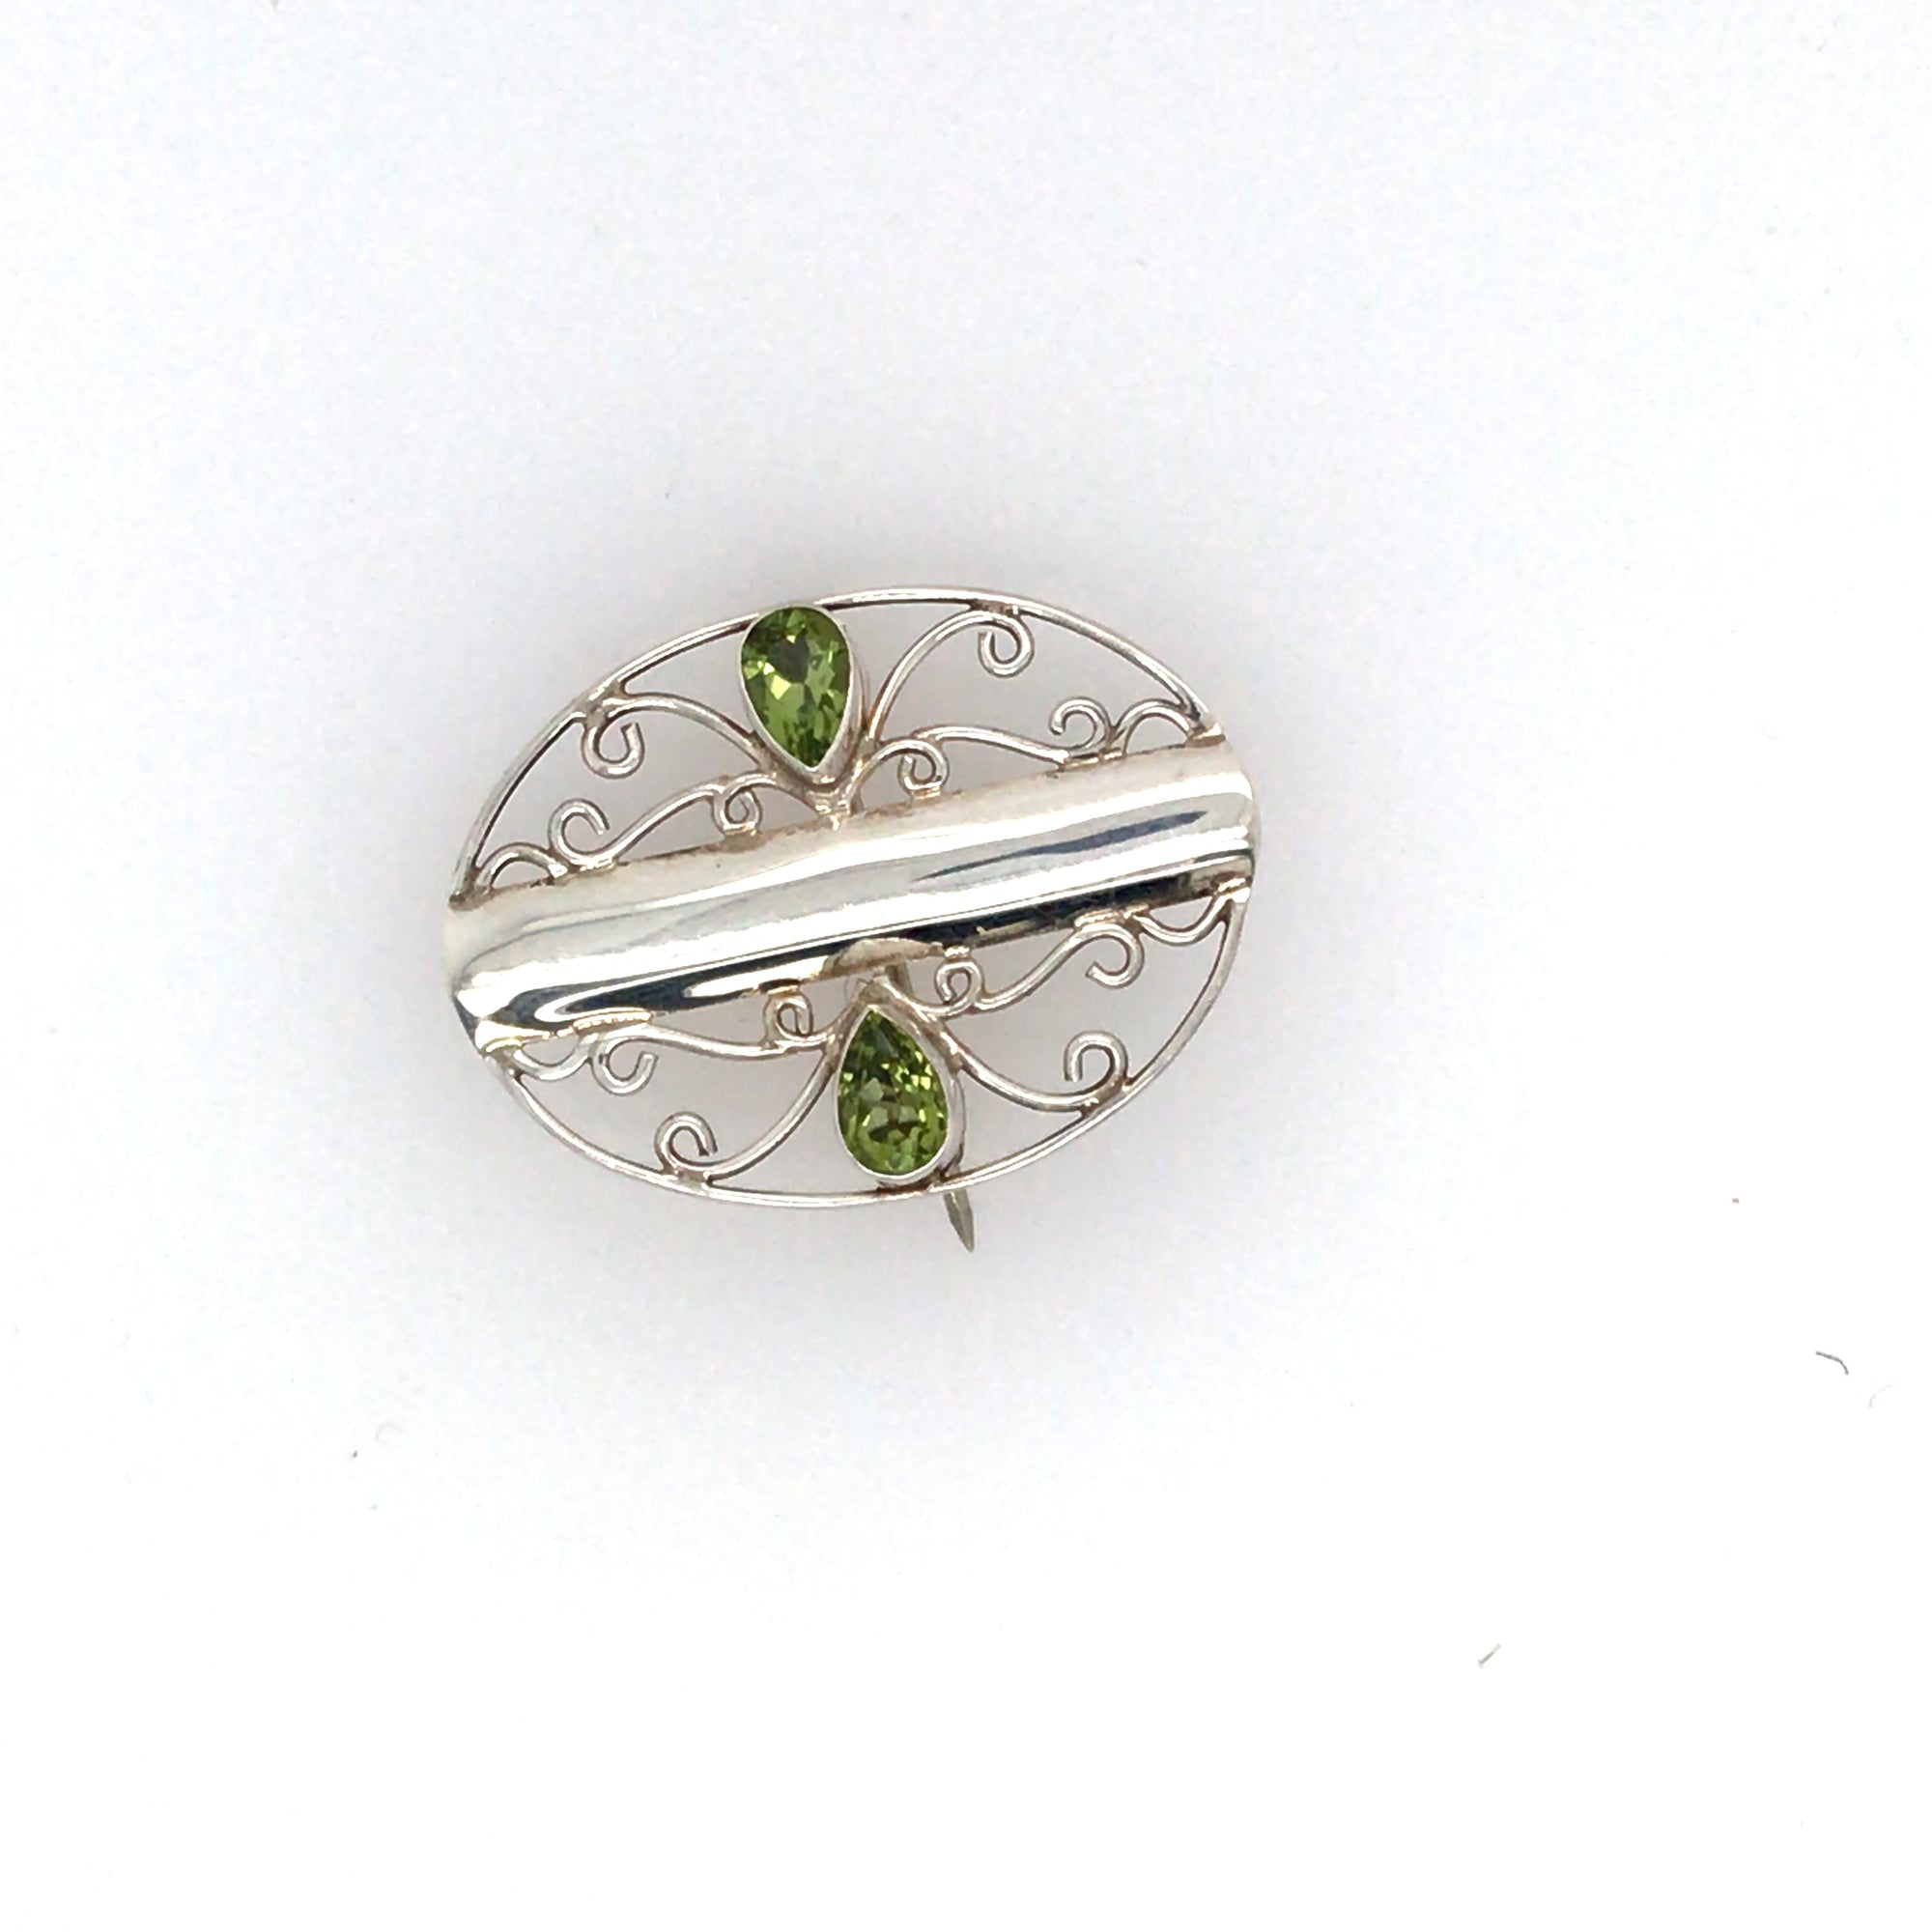 Peridot Sterling Silver Pin or Pendant